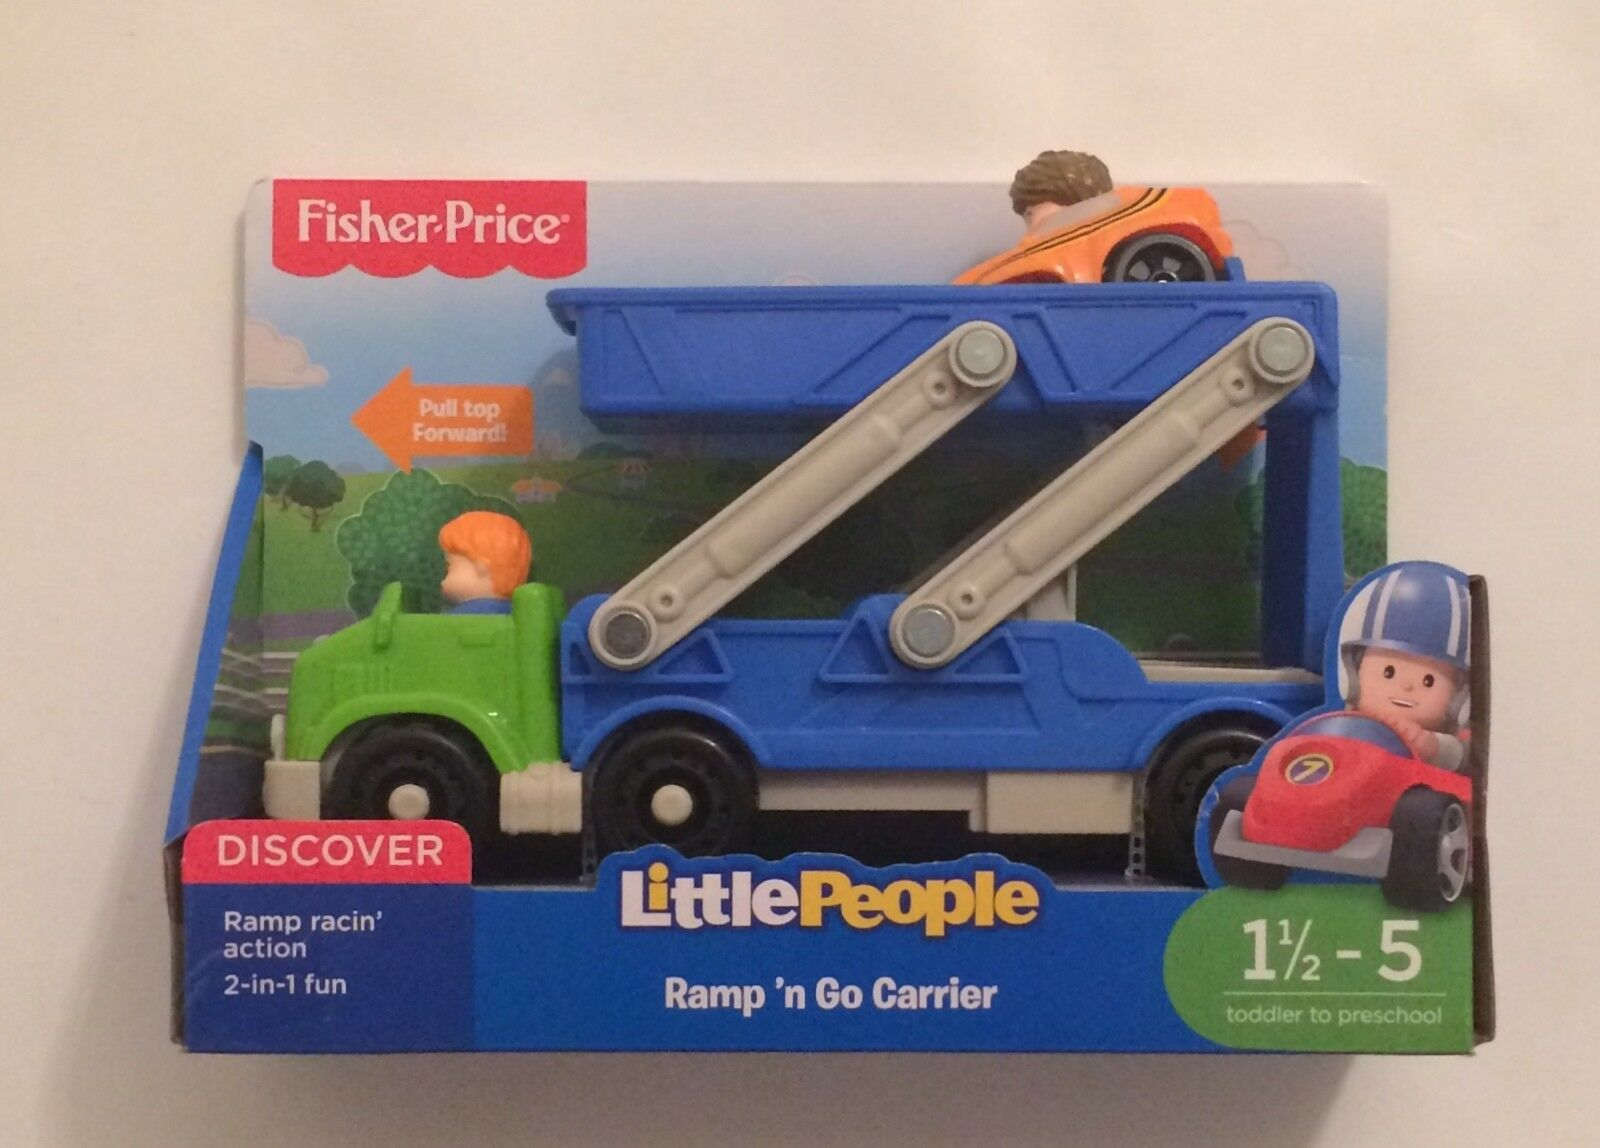 NIB Fisher-Price Little People Wheelies Ramp 'n and Go Car Carrier Toy